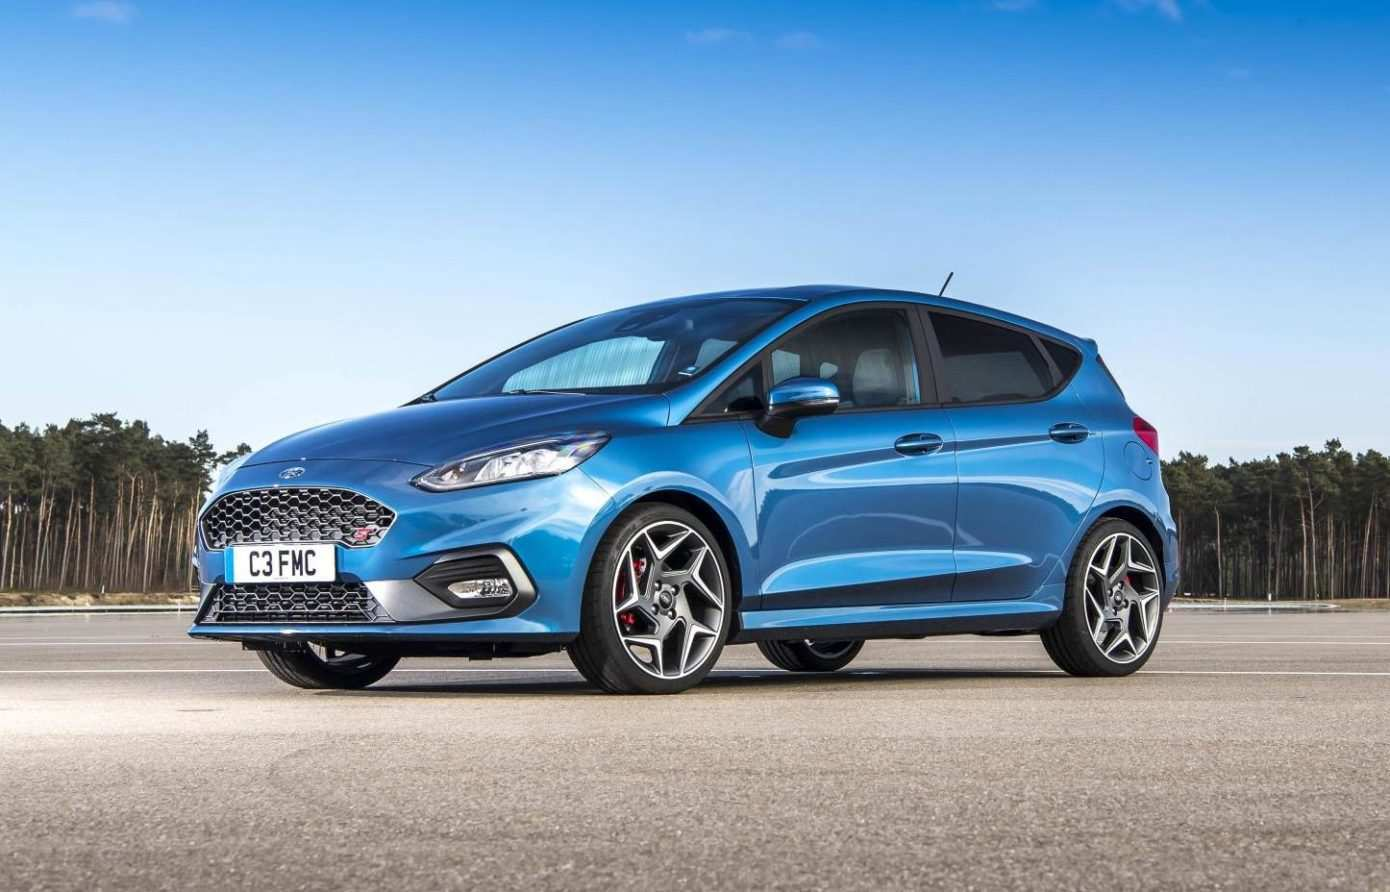 96 The 2019 Fiesta St Redesign